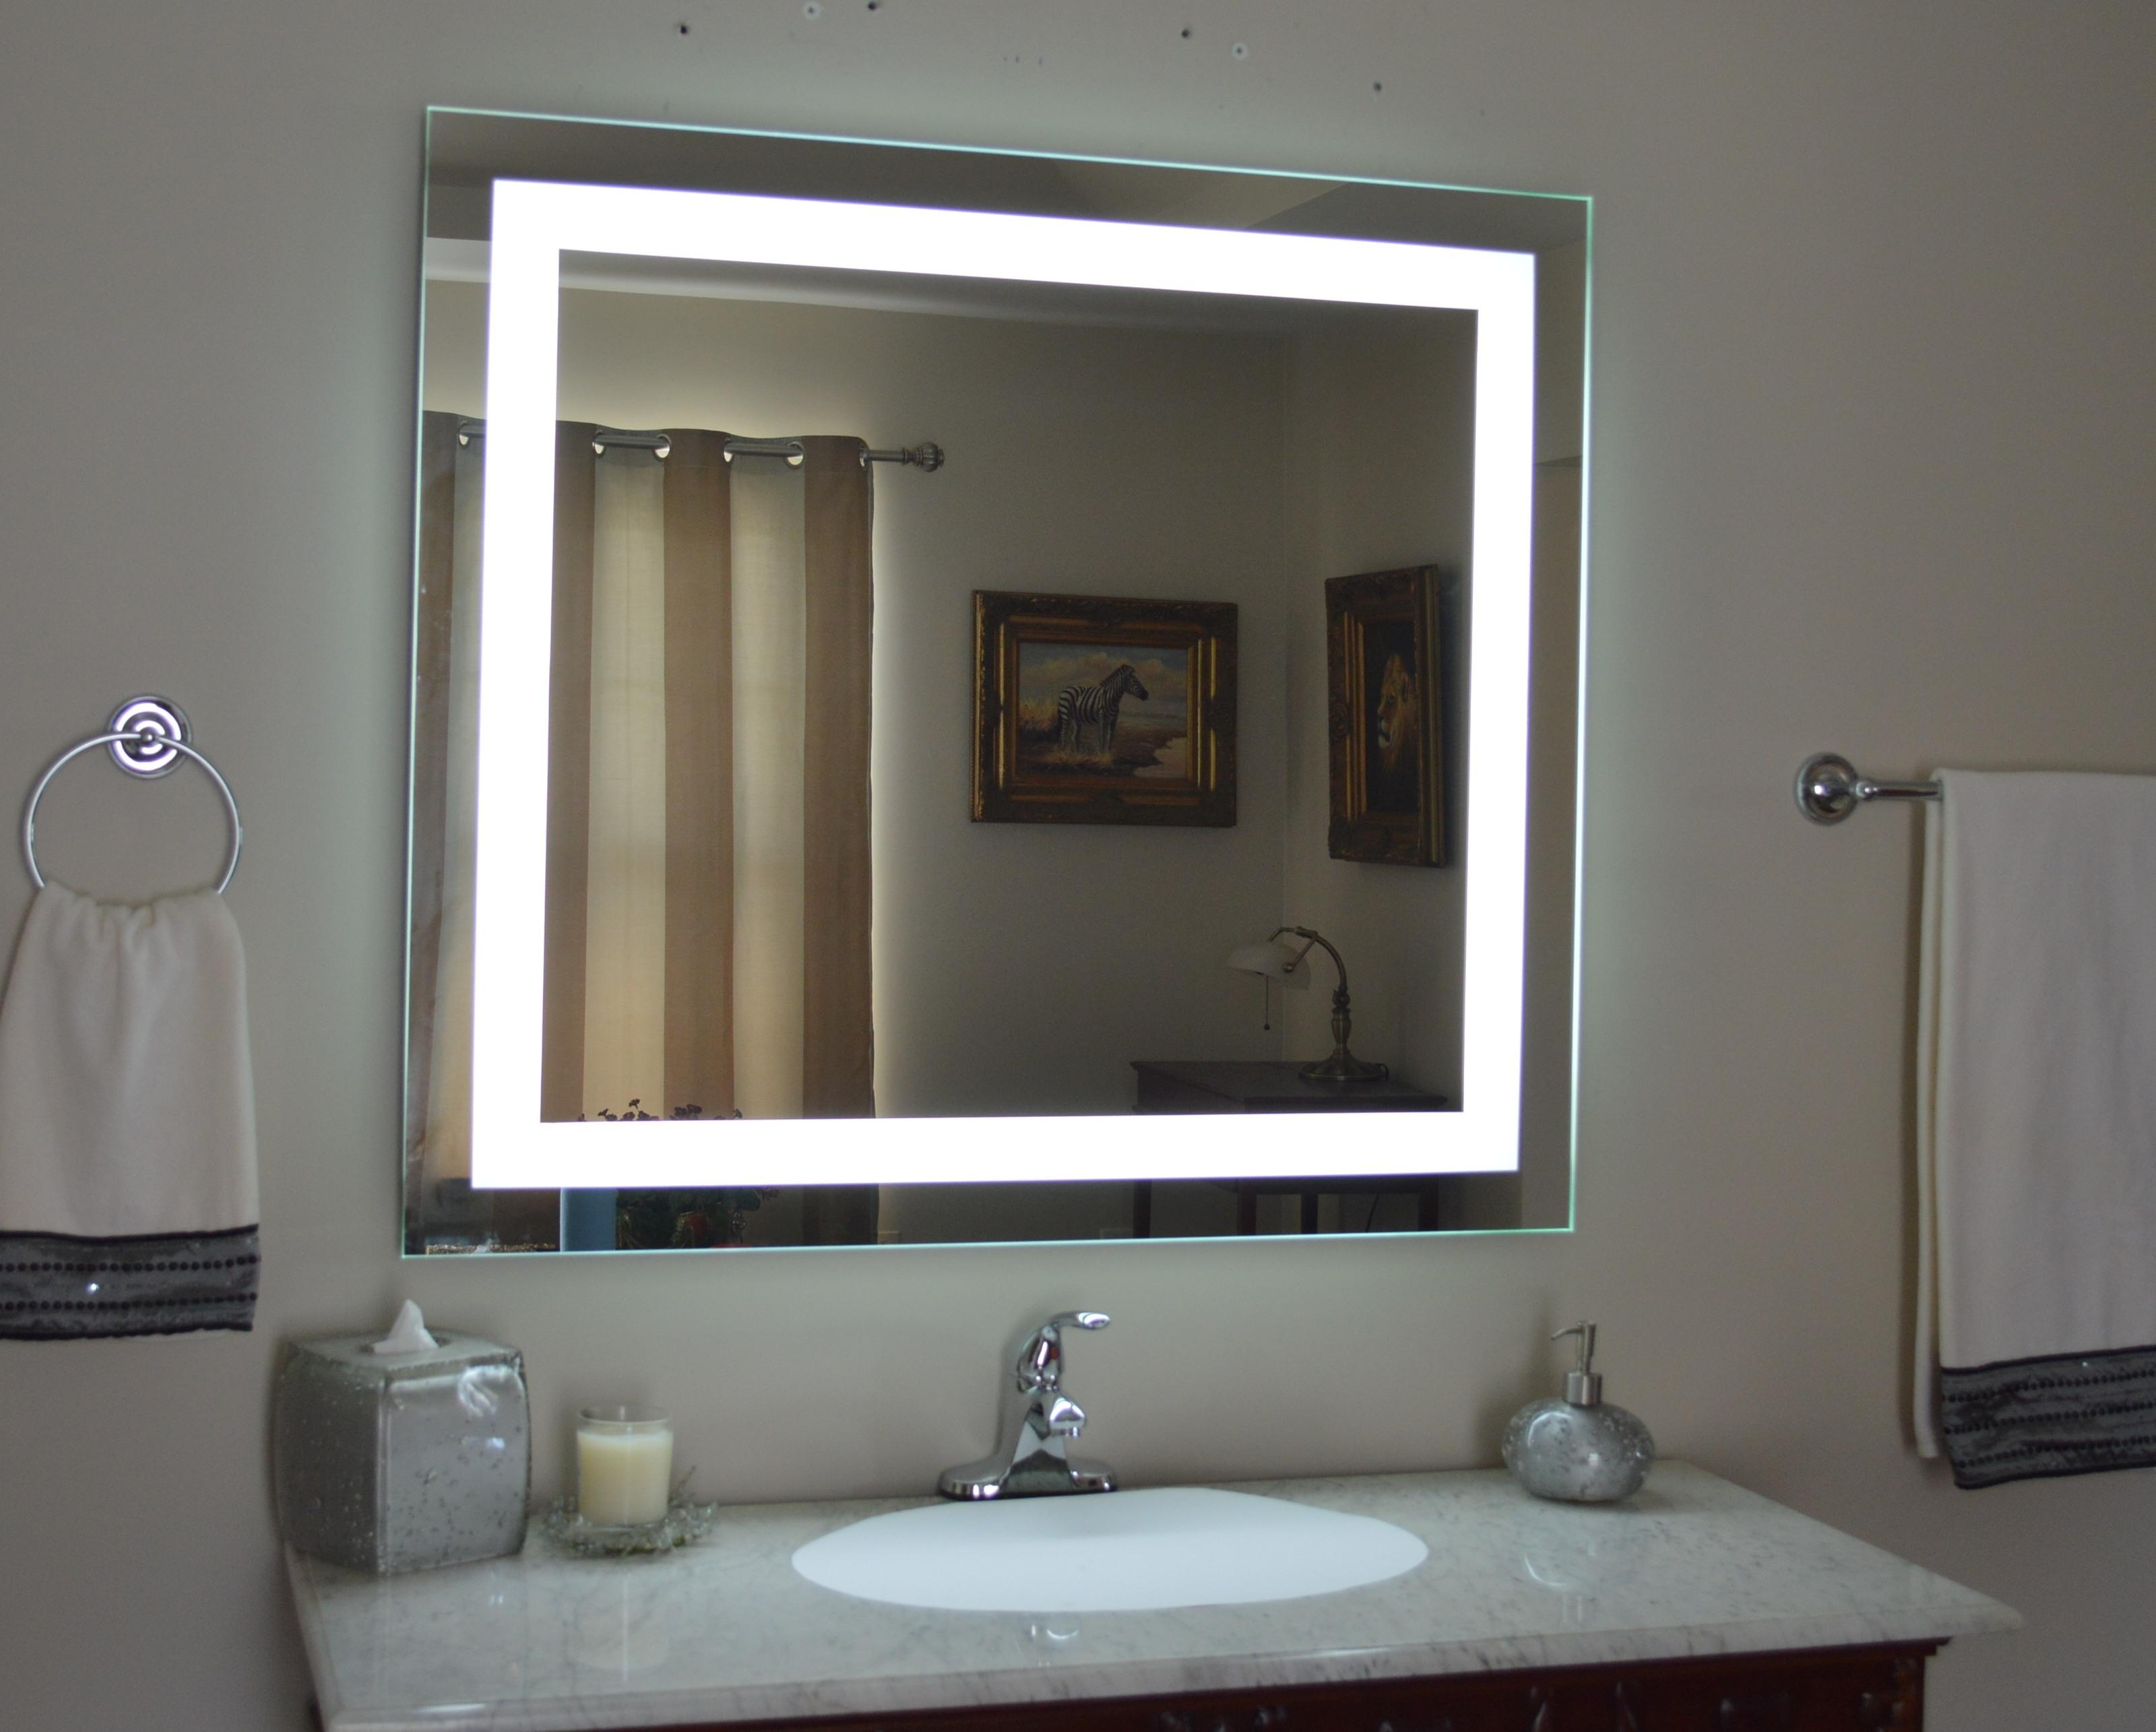 Makeup Mirror With Lights Wall Mounted – Pinotharvest With Regard To Mirror Wall Light (Image 11 of 20)